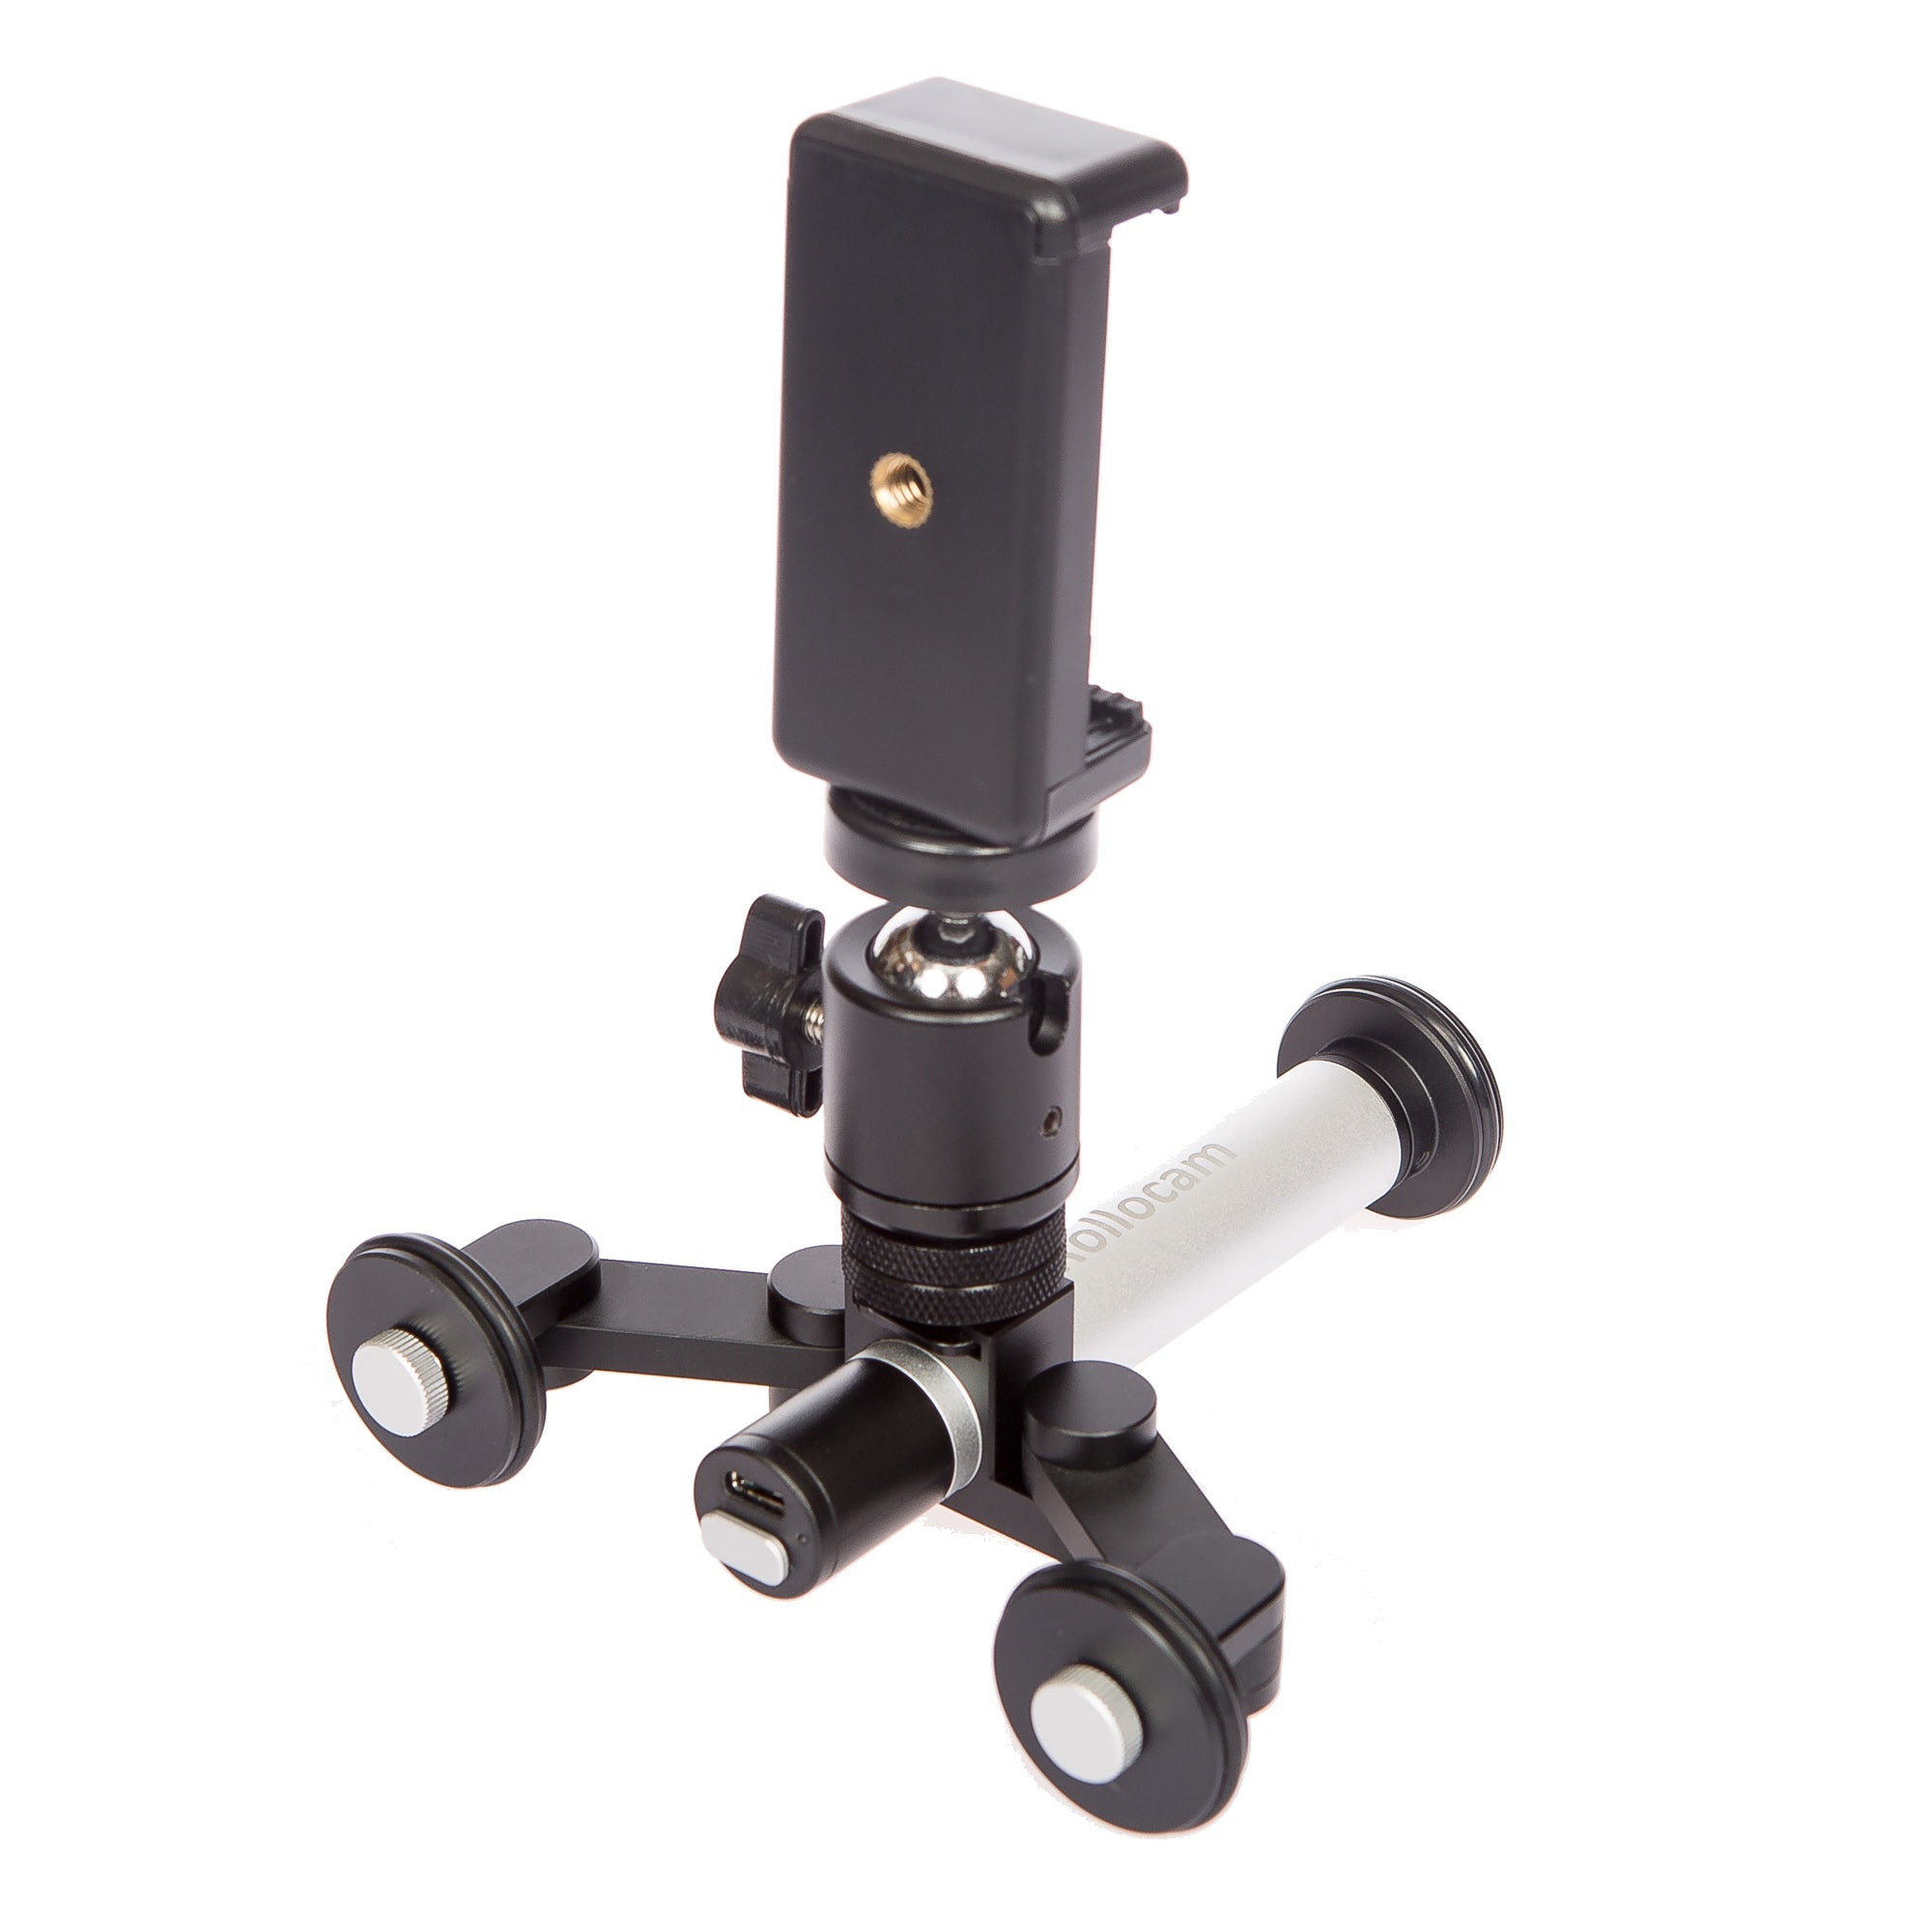 300-1    Rollocam H-2 Portable, Intelligent Motorized Desktop Dolly / Tripod System